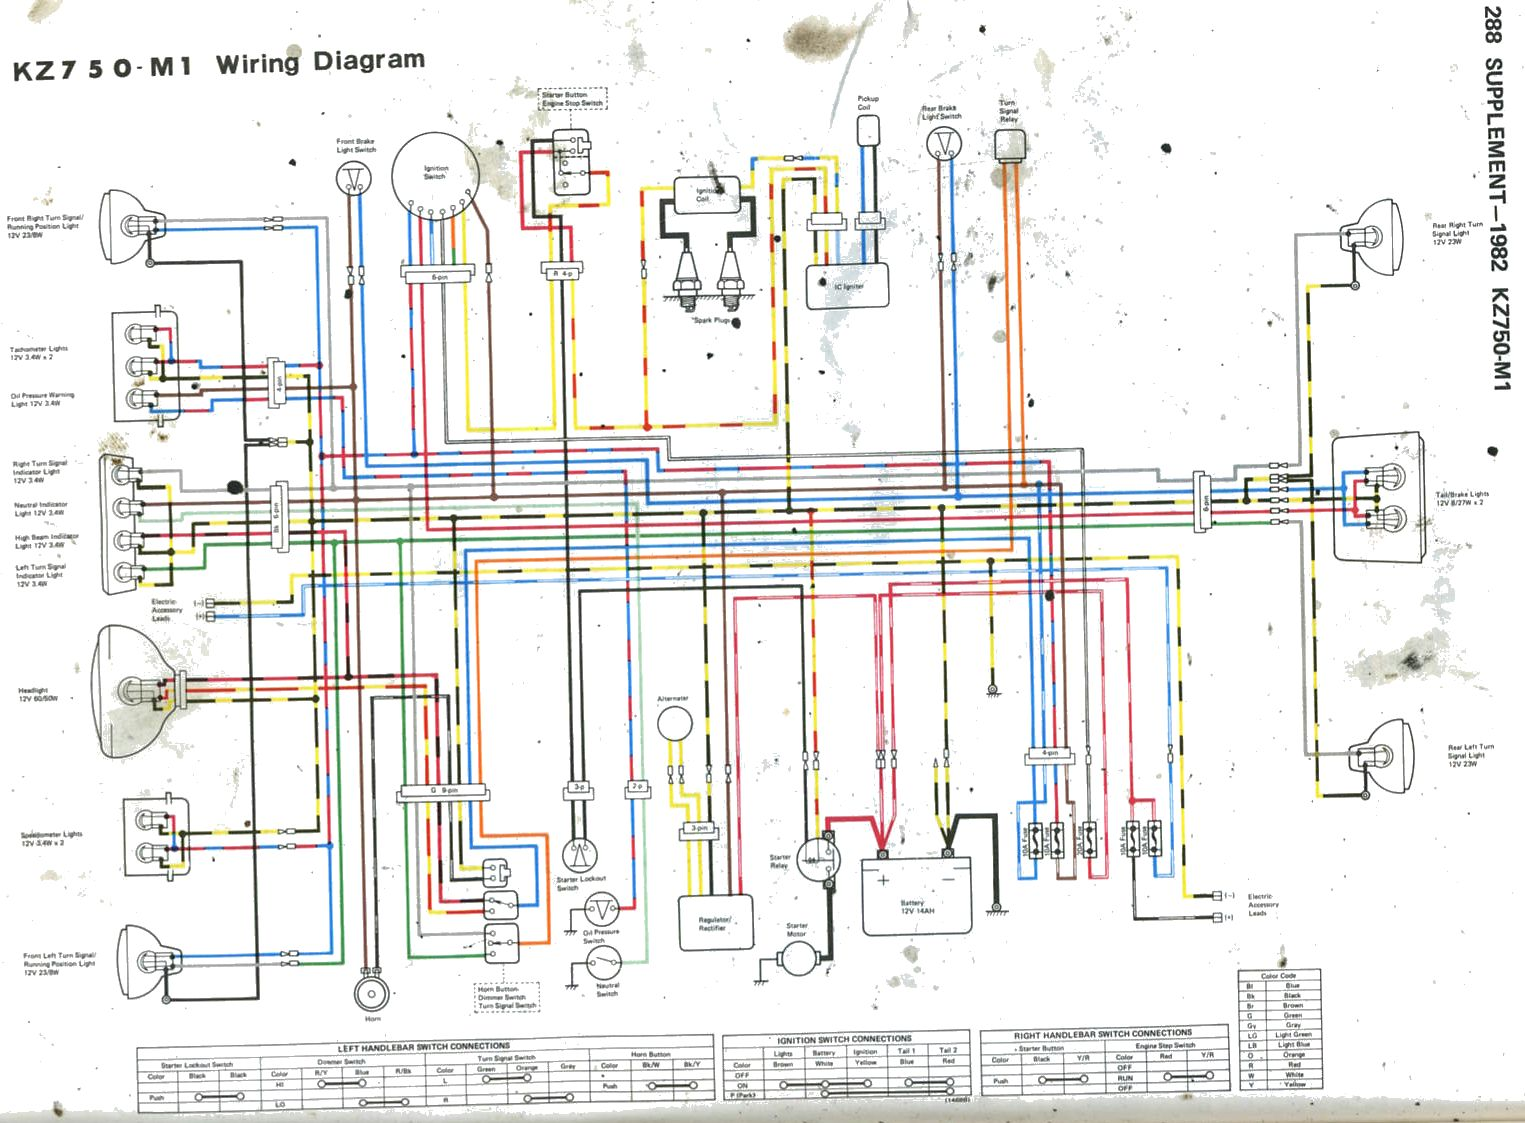 1982 Ignition switch wiring - KZRider Forum - KZRider, KZ ... on kawasaki ninja 500 wiring diagram, kawasaki kx80 wiring diagram, kawasaki nomad wiring diagram, kawasaki voyager xii wiring diagram, kawasaki ninja 250 wiring diagram, kawasaki ke175 wiring diagram, kawasaki kz1100 wiring diagram,